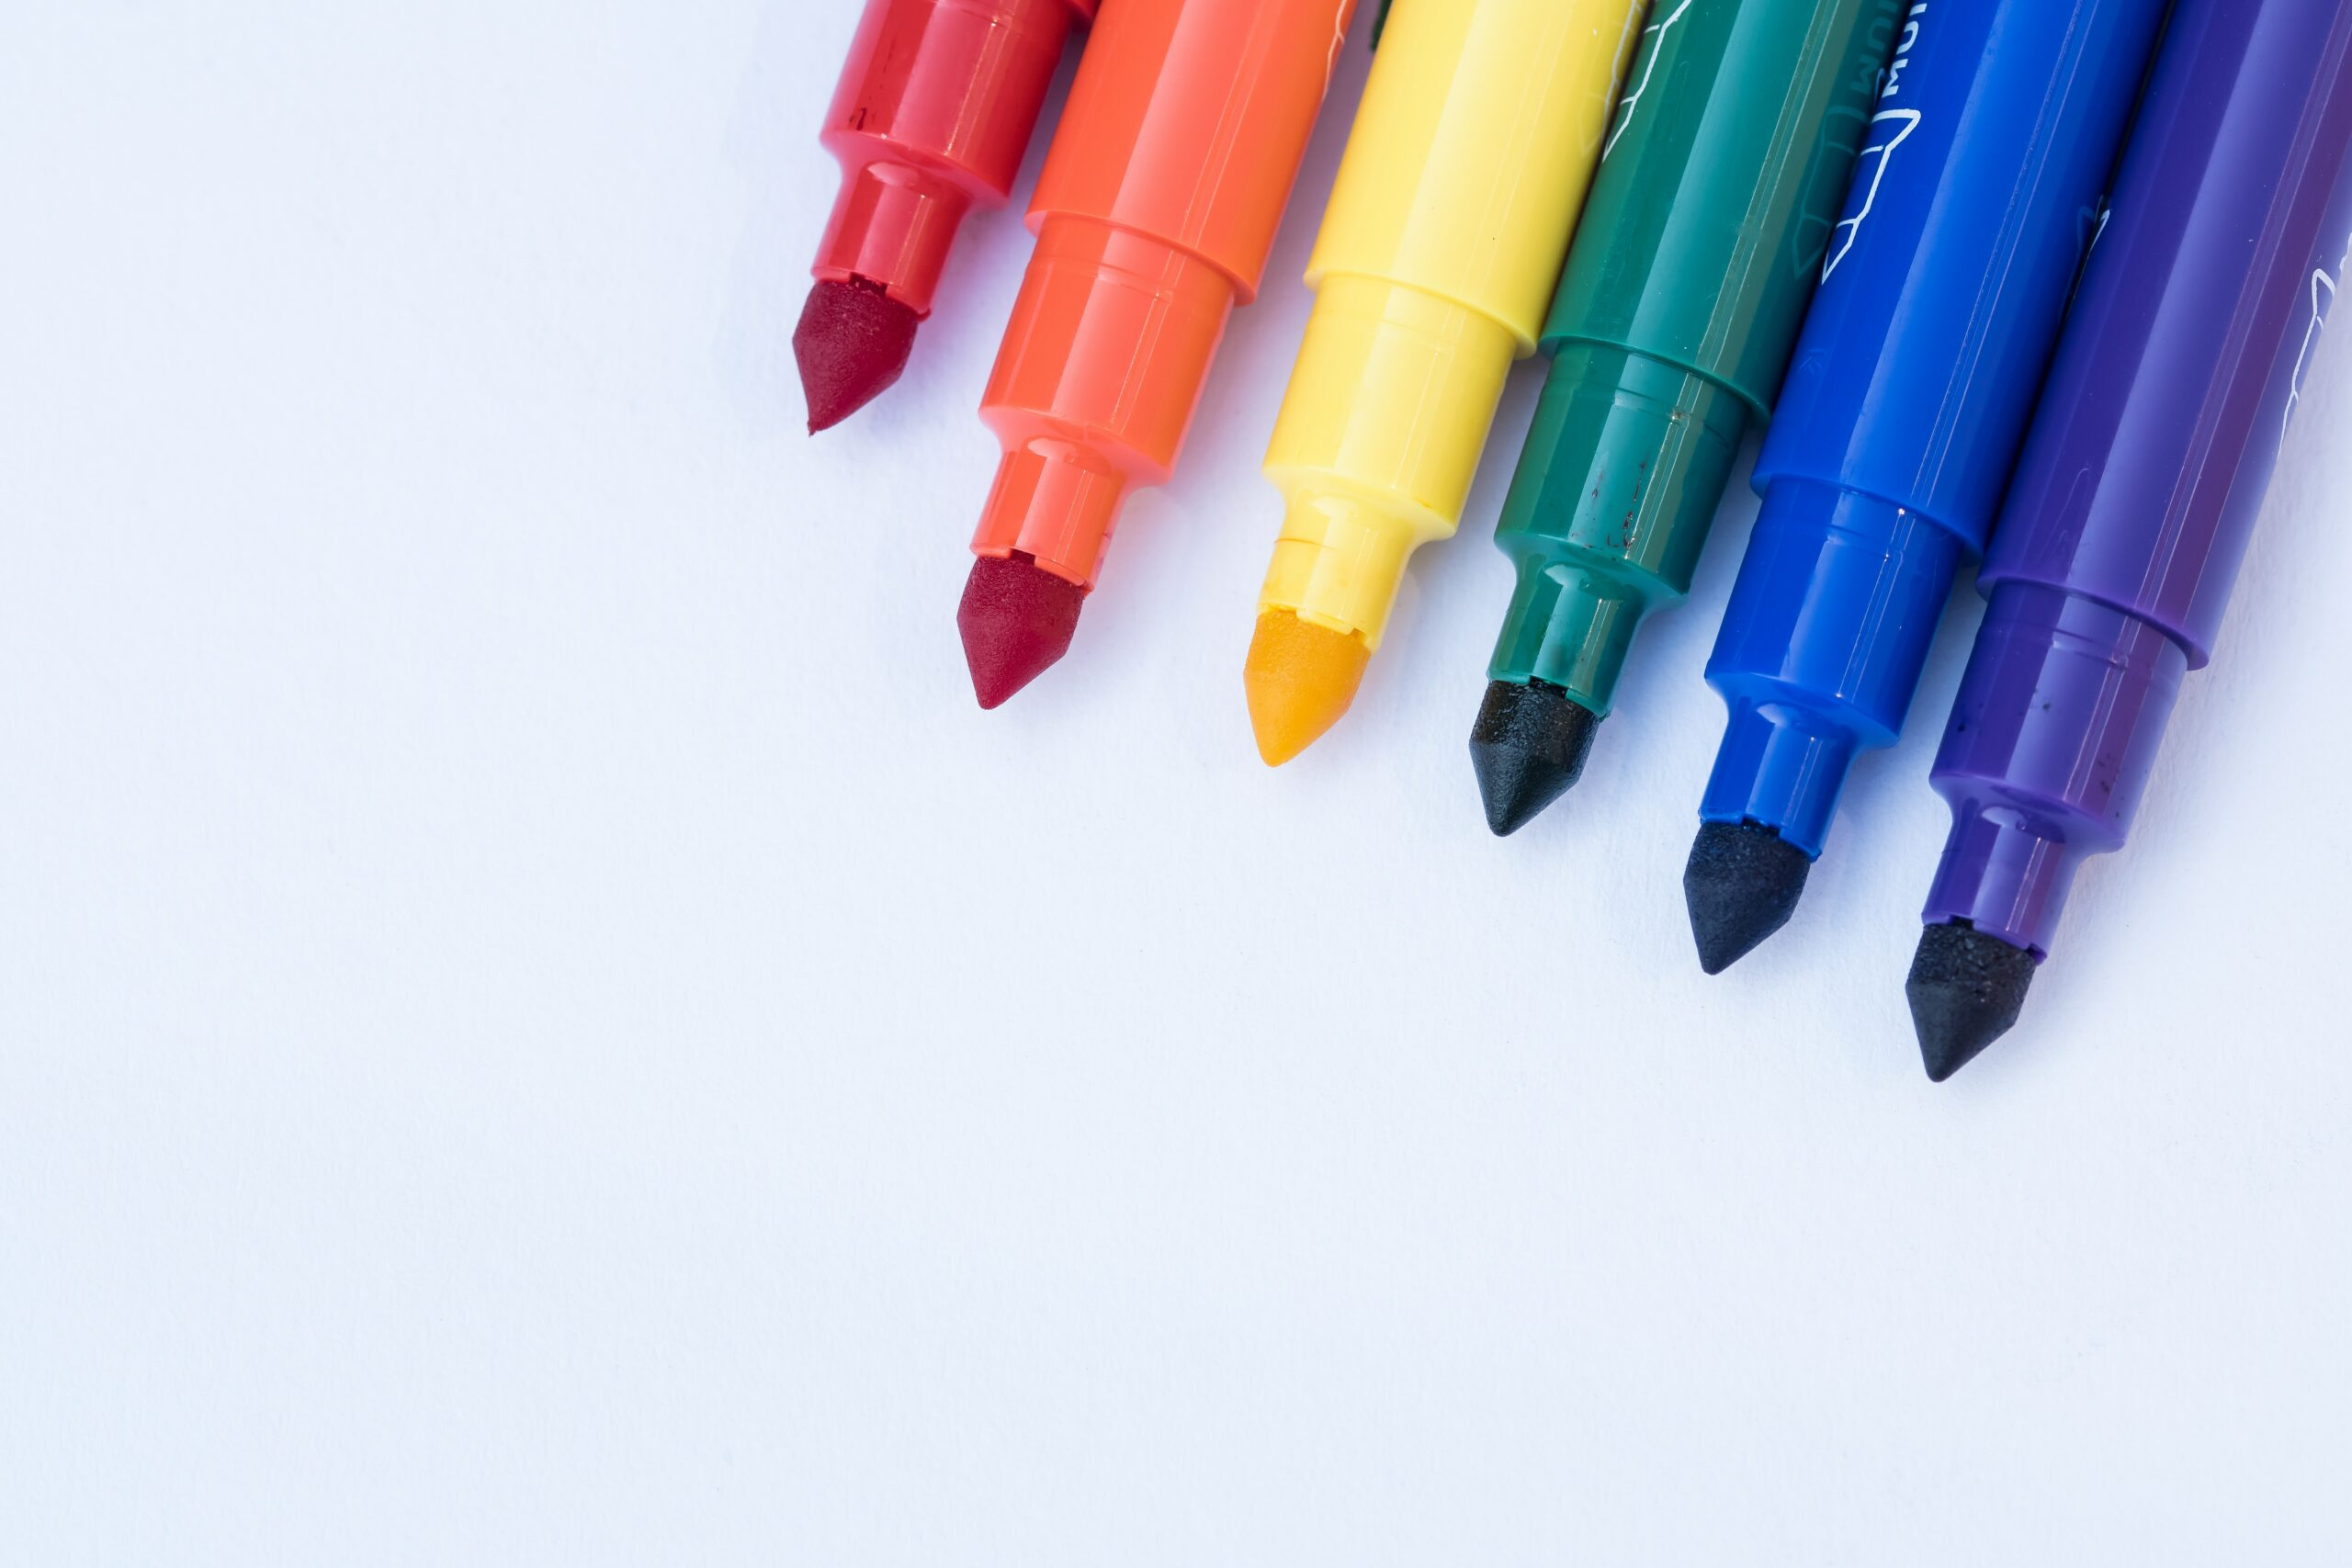 colorful dry erase markers